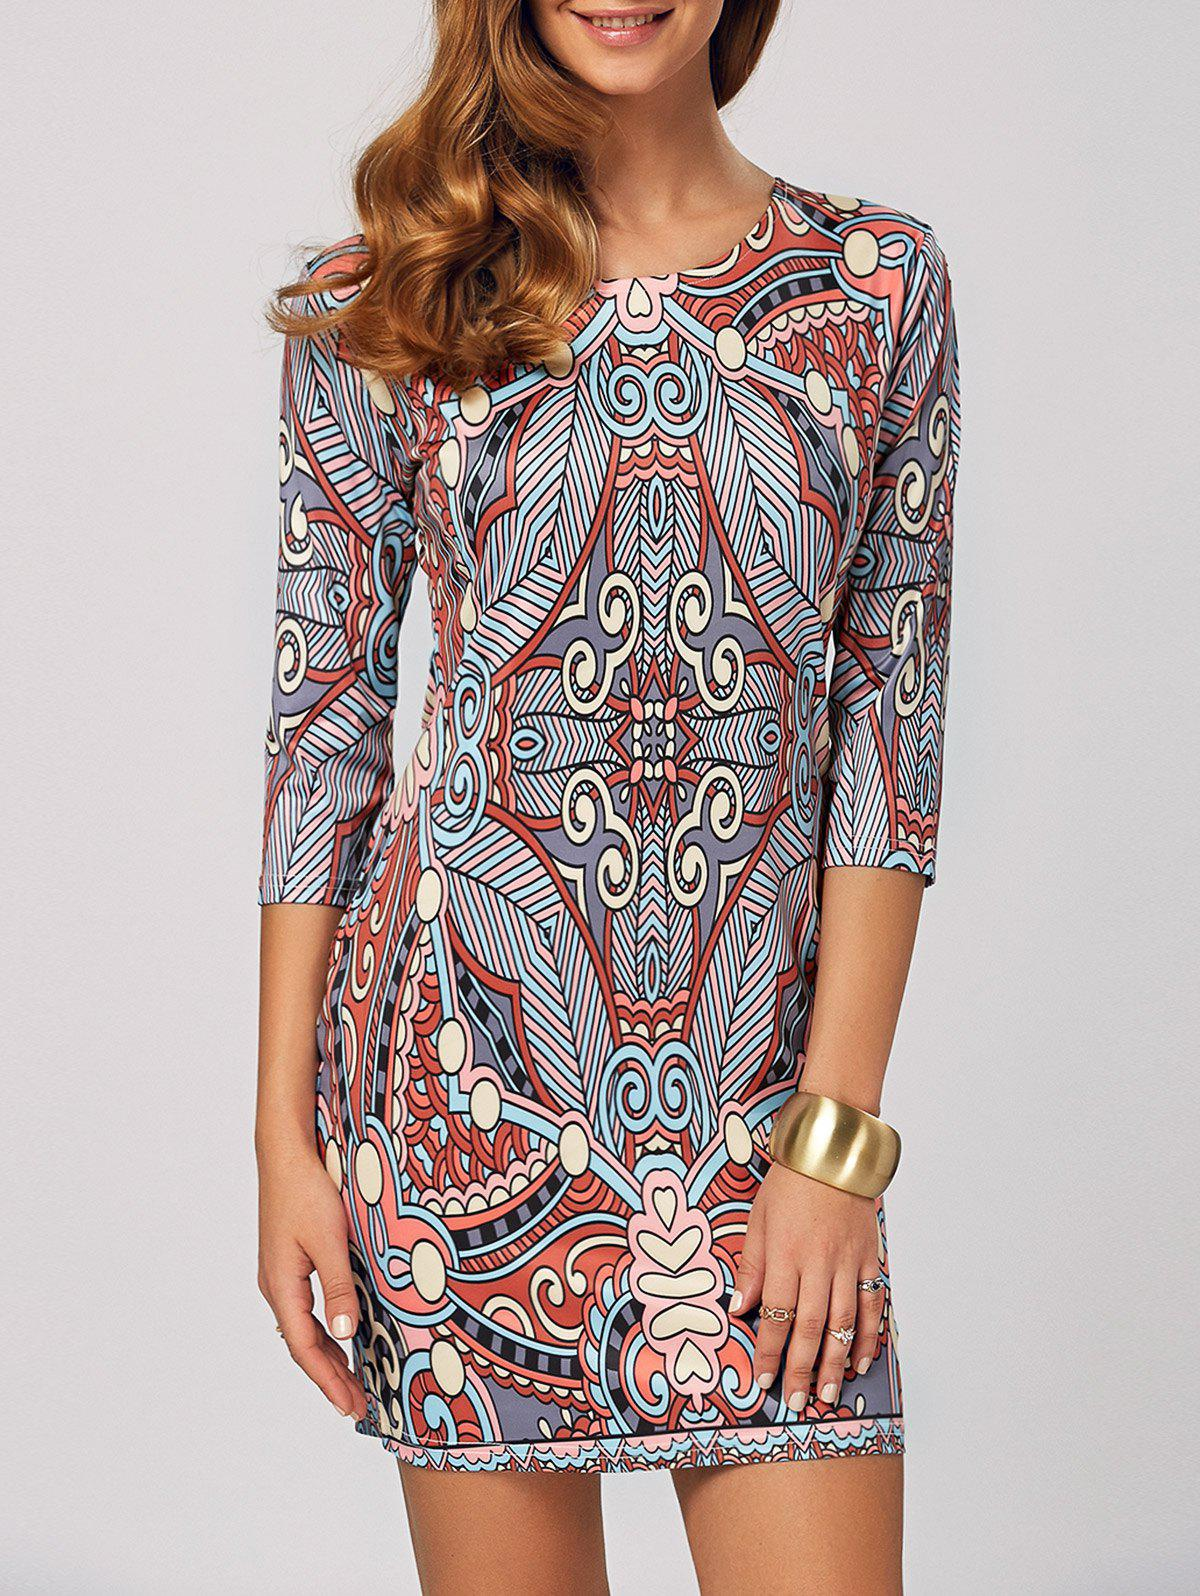 Abstract Print Bodycon Mini Dress - COLORMIX XS